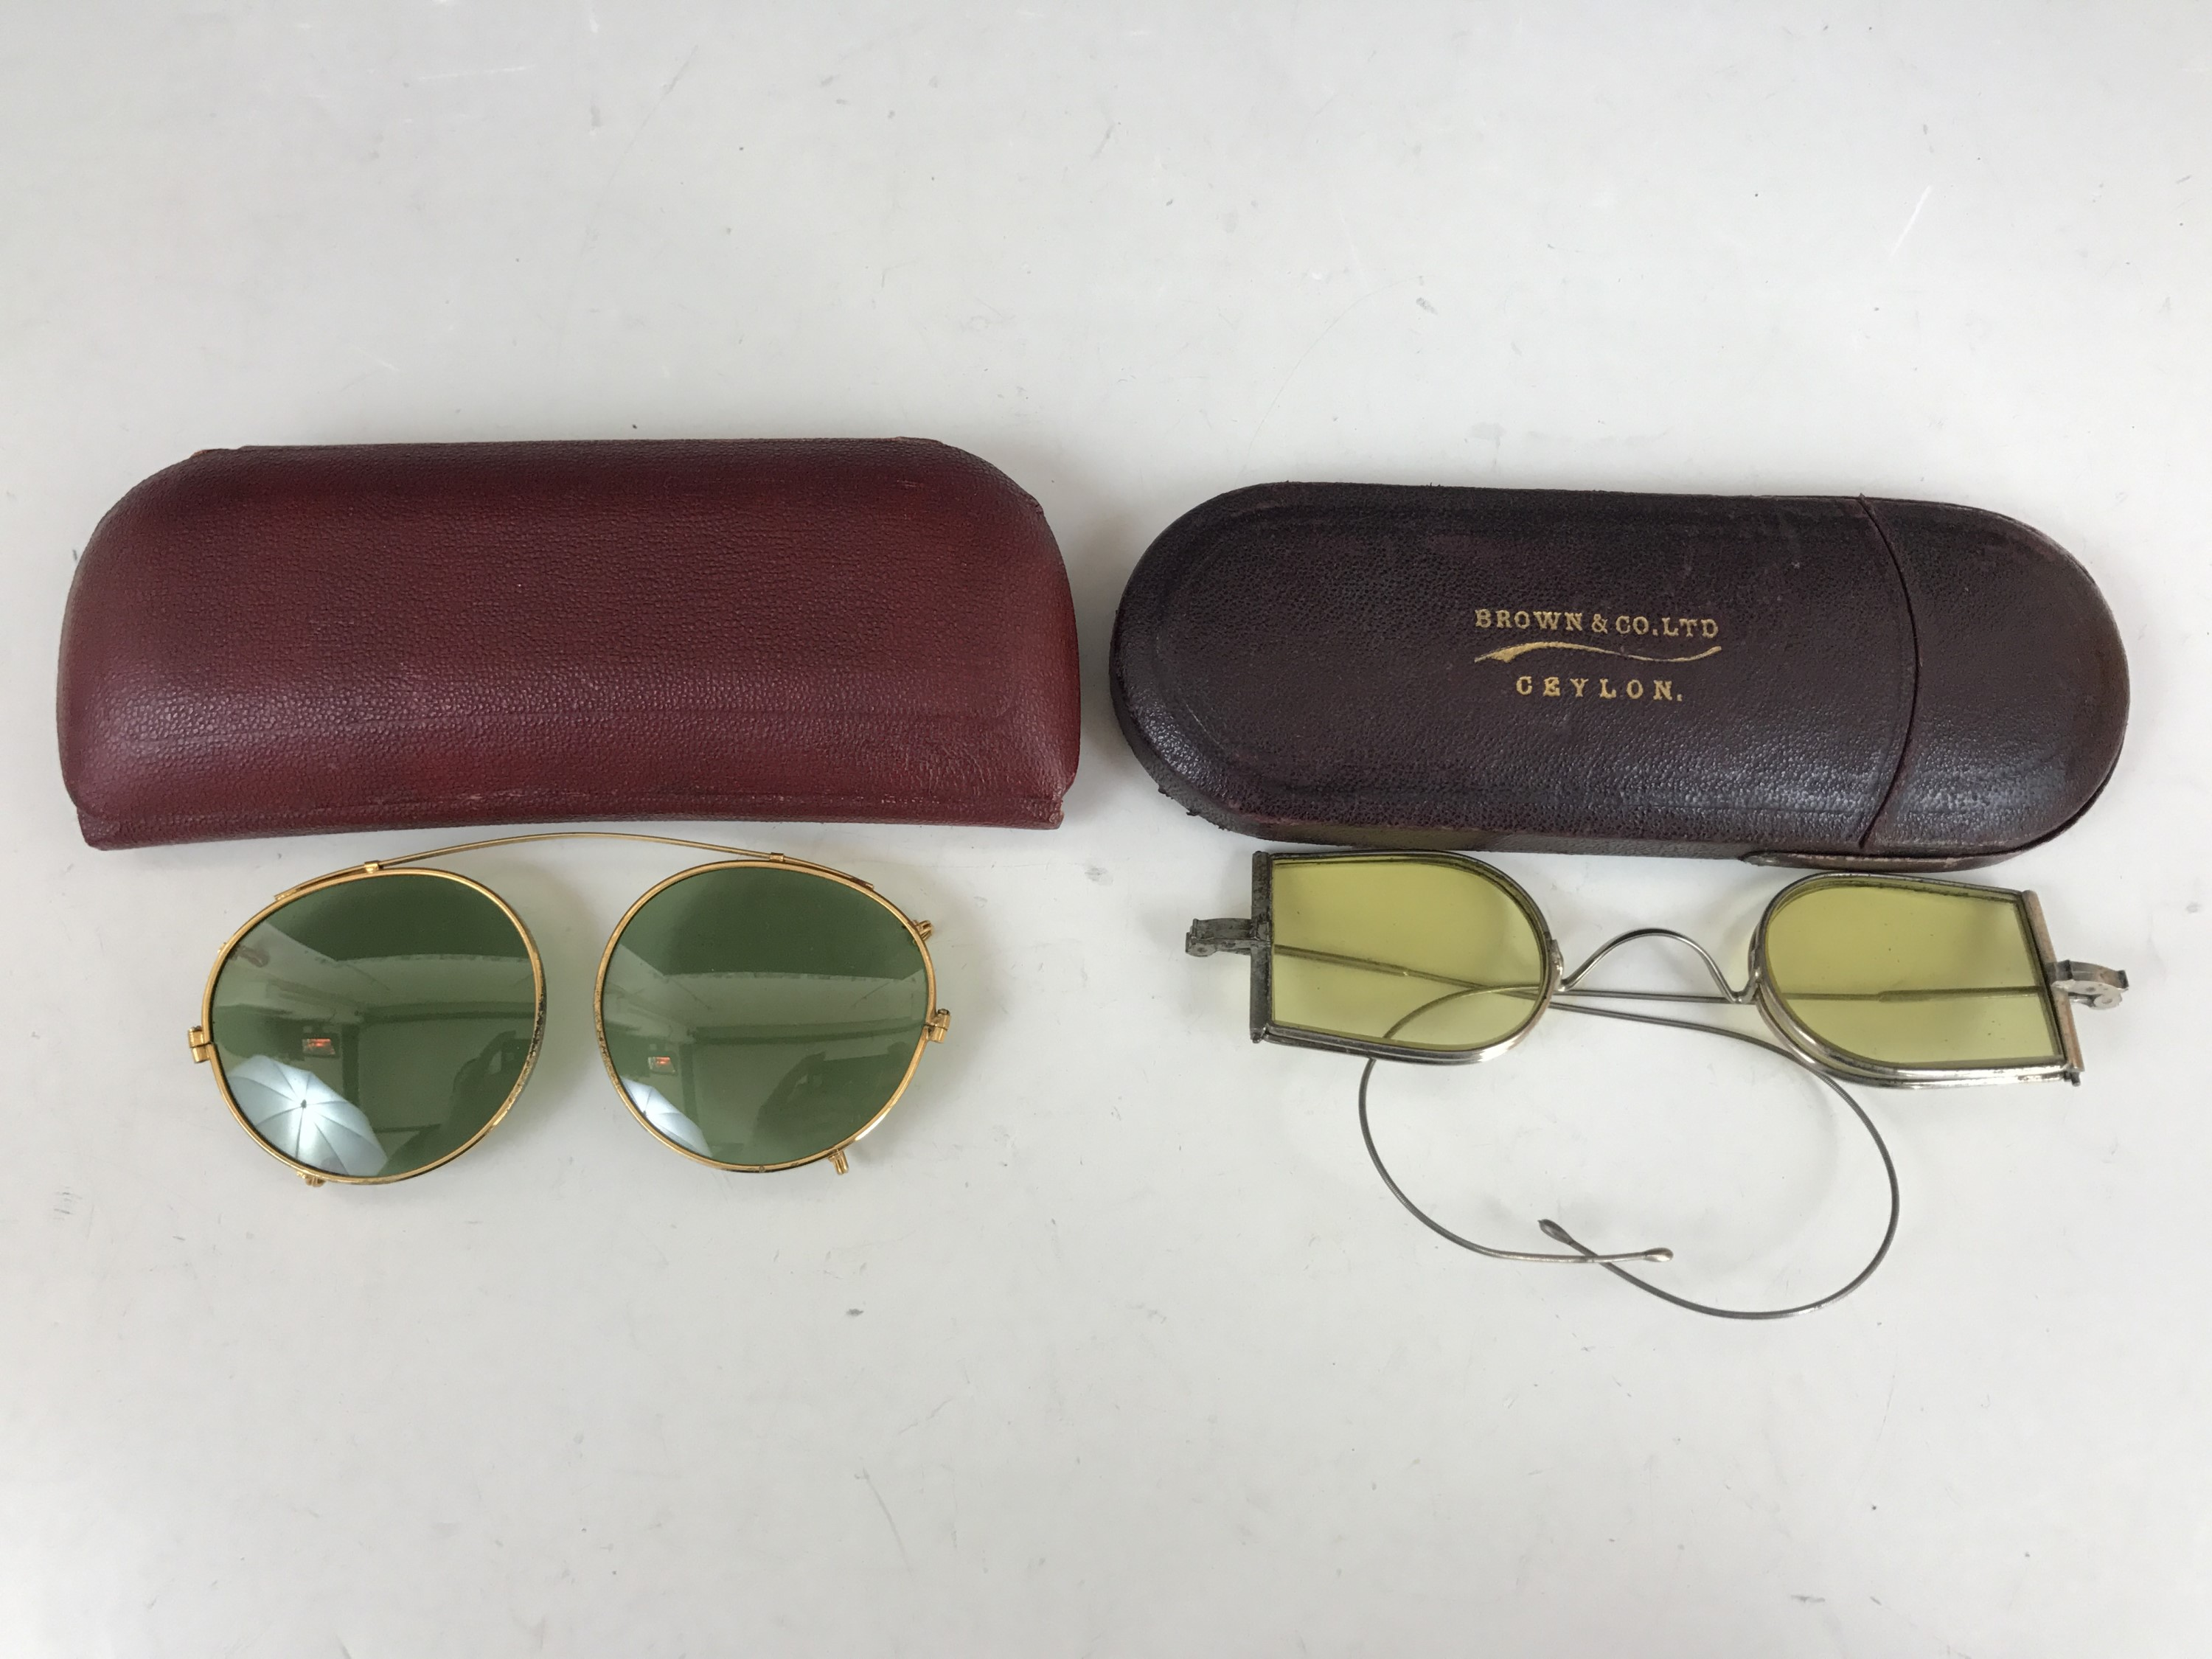 Lot 8 - A pair of late 19th Century folding sunglasses retailed by Brown & Co Ltd of Ceylon, in fitted case,